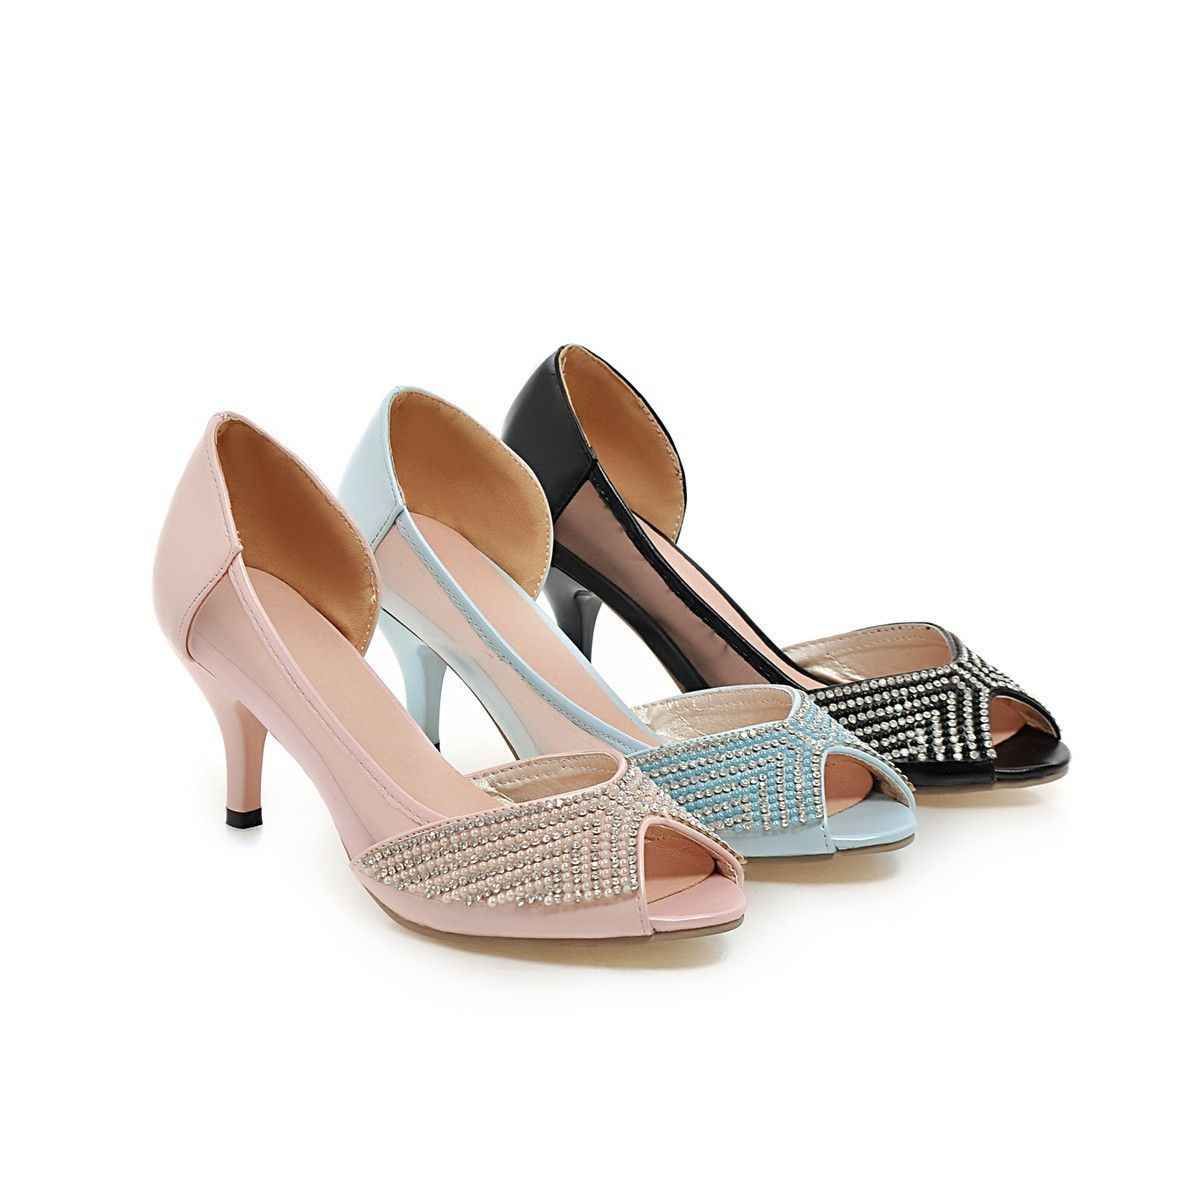 964b54d9882 Heels: approx 7 cm Platform: approx - cm Color: black, blue, pink Size: us  2, 3, 4, 5, 6, 7, 8, 9, 10, 11, 12 (All Measurement In Cm And Please Note  ...